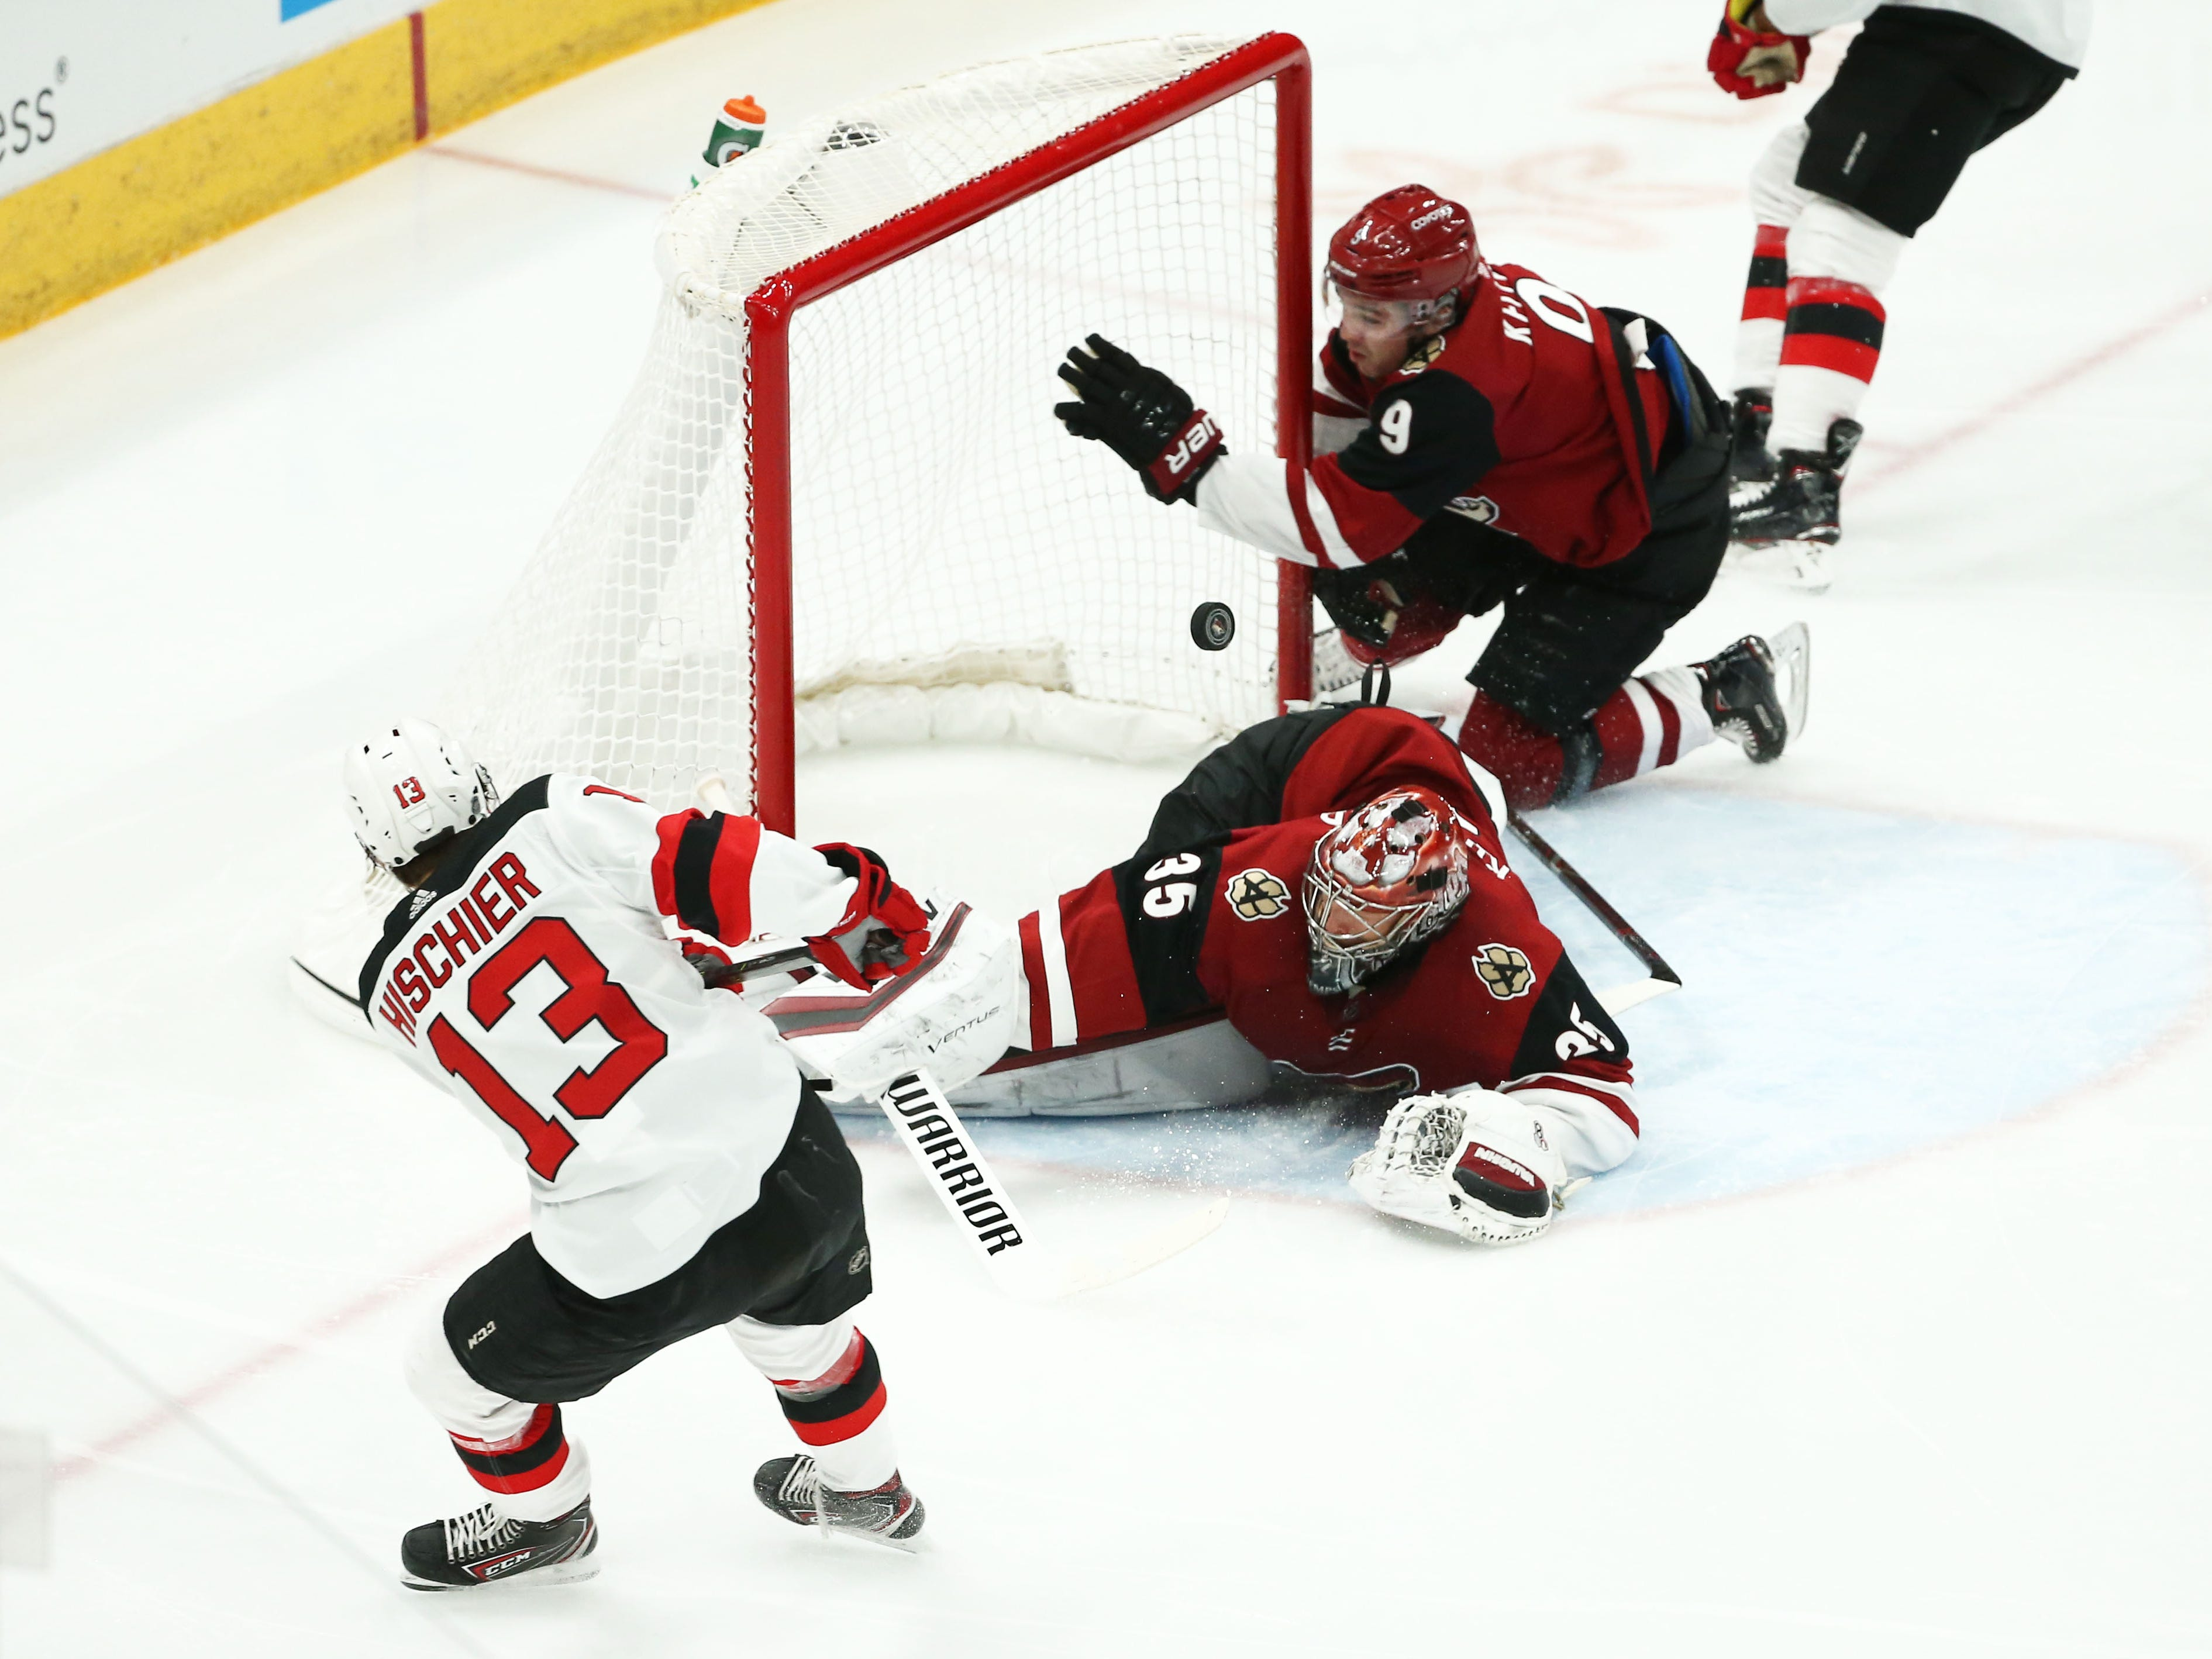 Arizona Coyotes' Clayton Keller knocks the goal away as New Jersey Devils' Nico Hischier scores a goal in the 1st period on Jan. 4 at Gila River Arena.